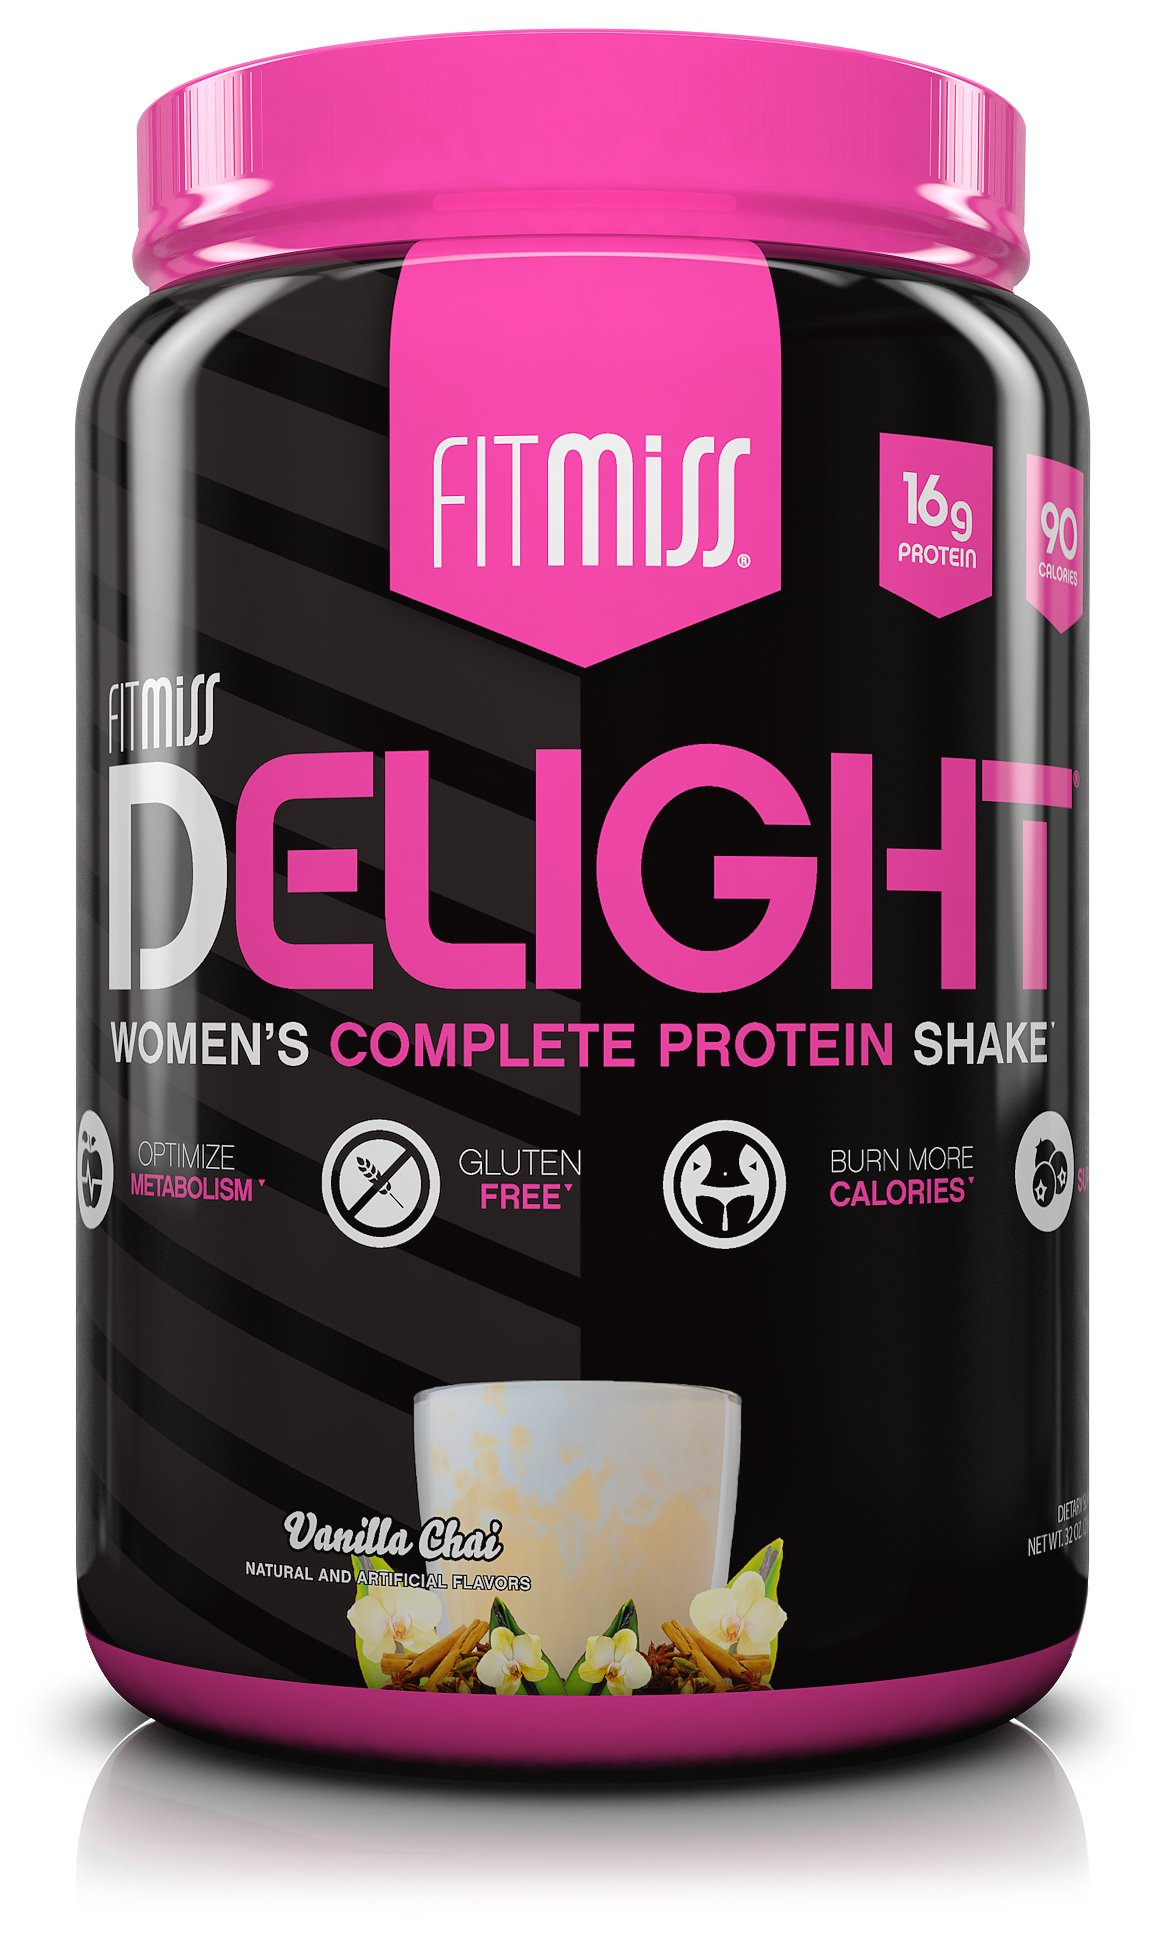 FitMiss Delight Protein Powder- Healthy Nutritional Shake for Women with Whey Protein, Fruits, Vegetables and Digestive Enzymes to Support Weight Loss and Lean Muscle Mass, Vanilla Chai, 2 Pound